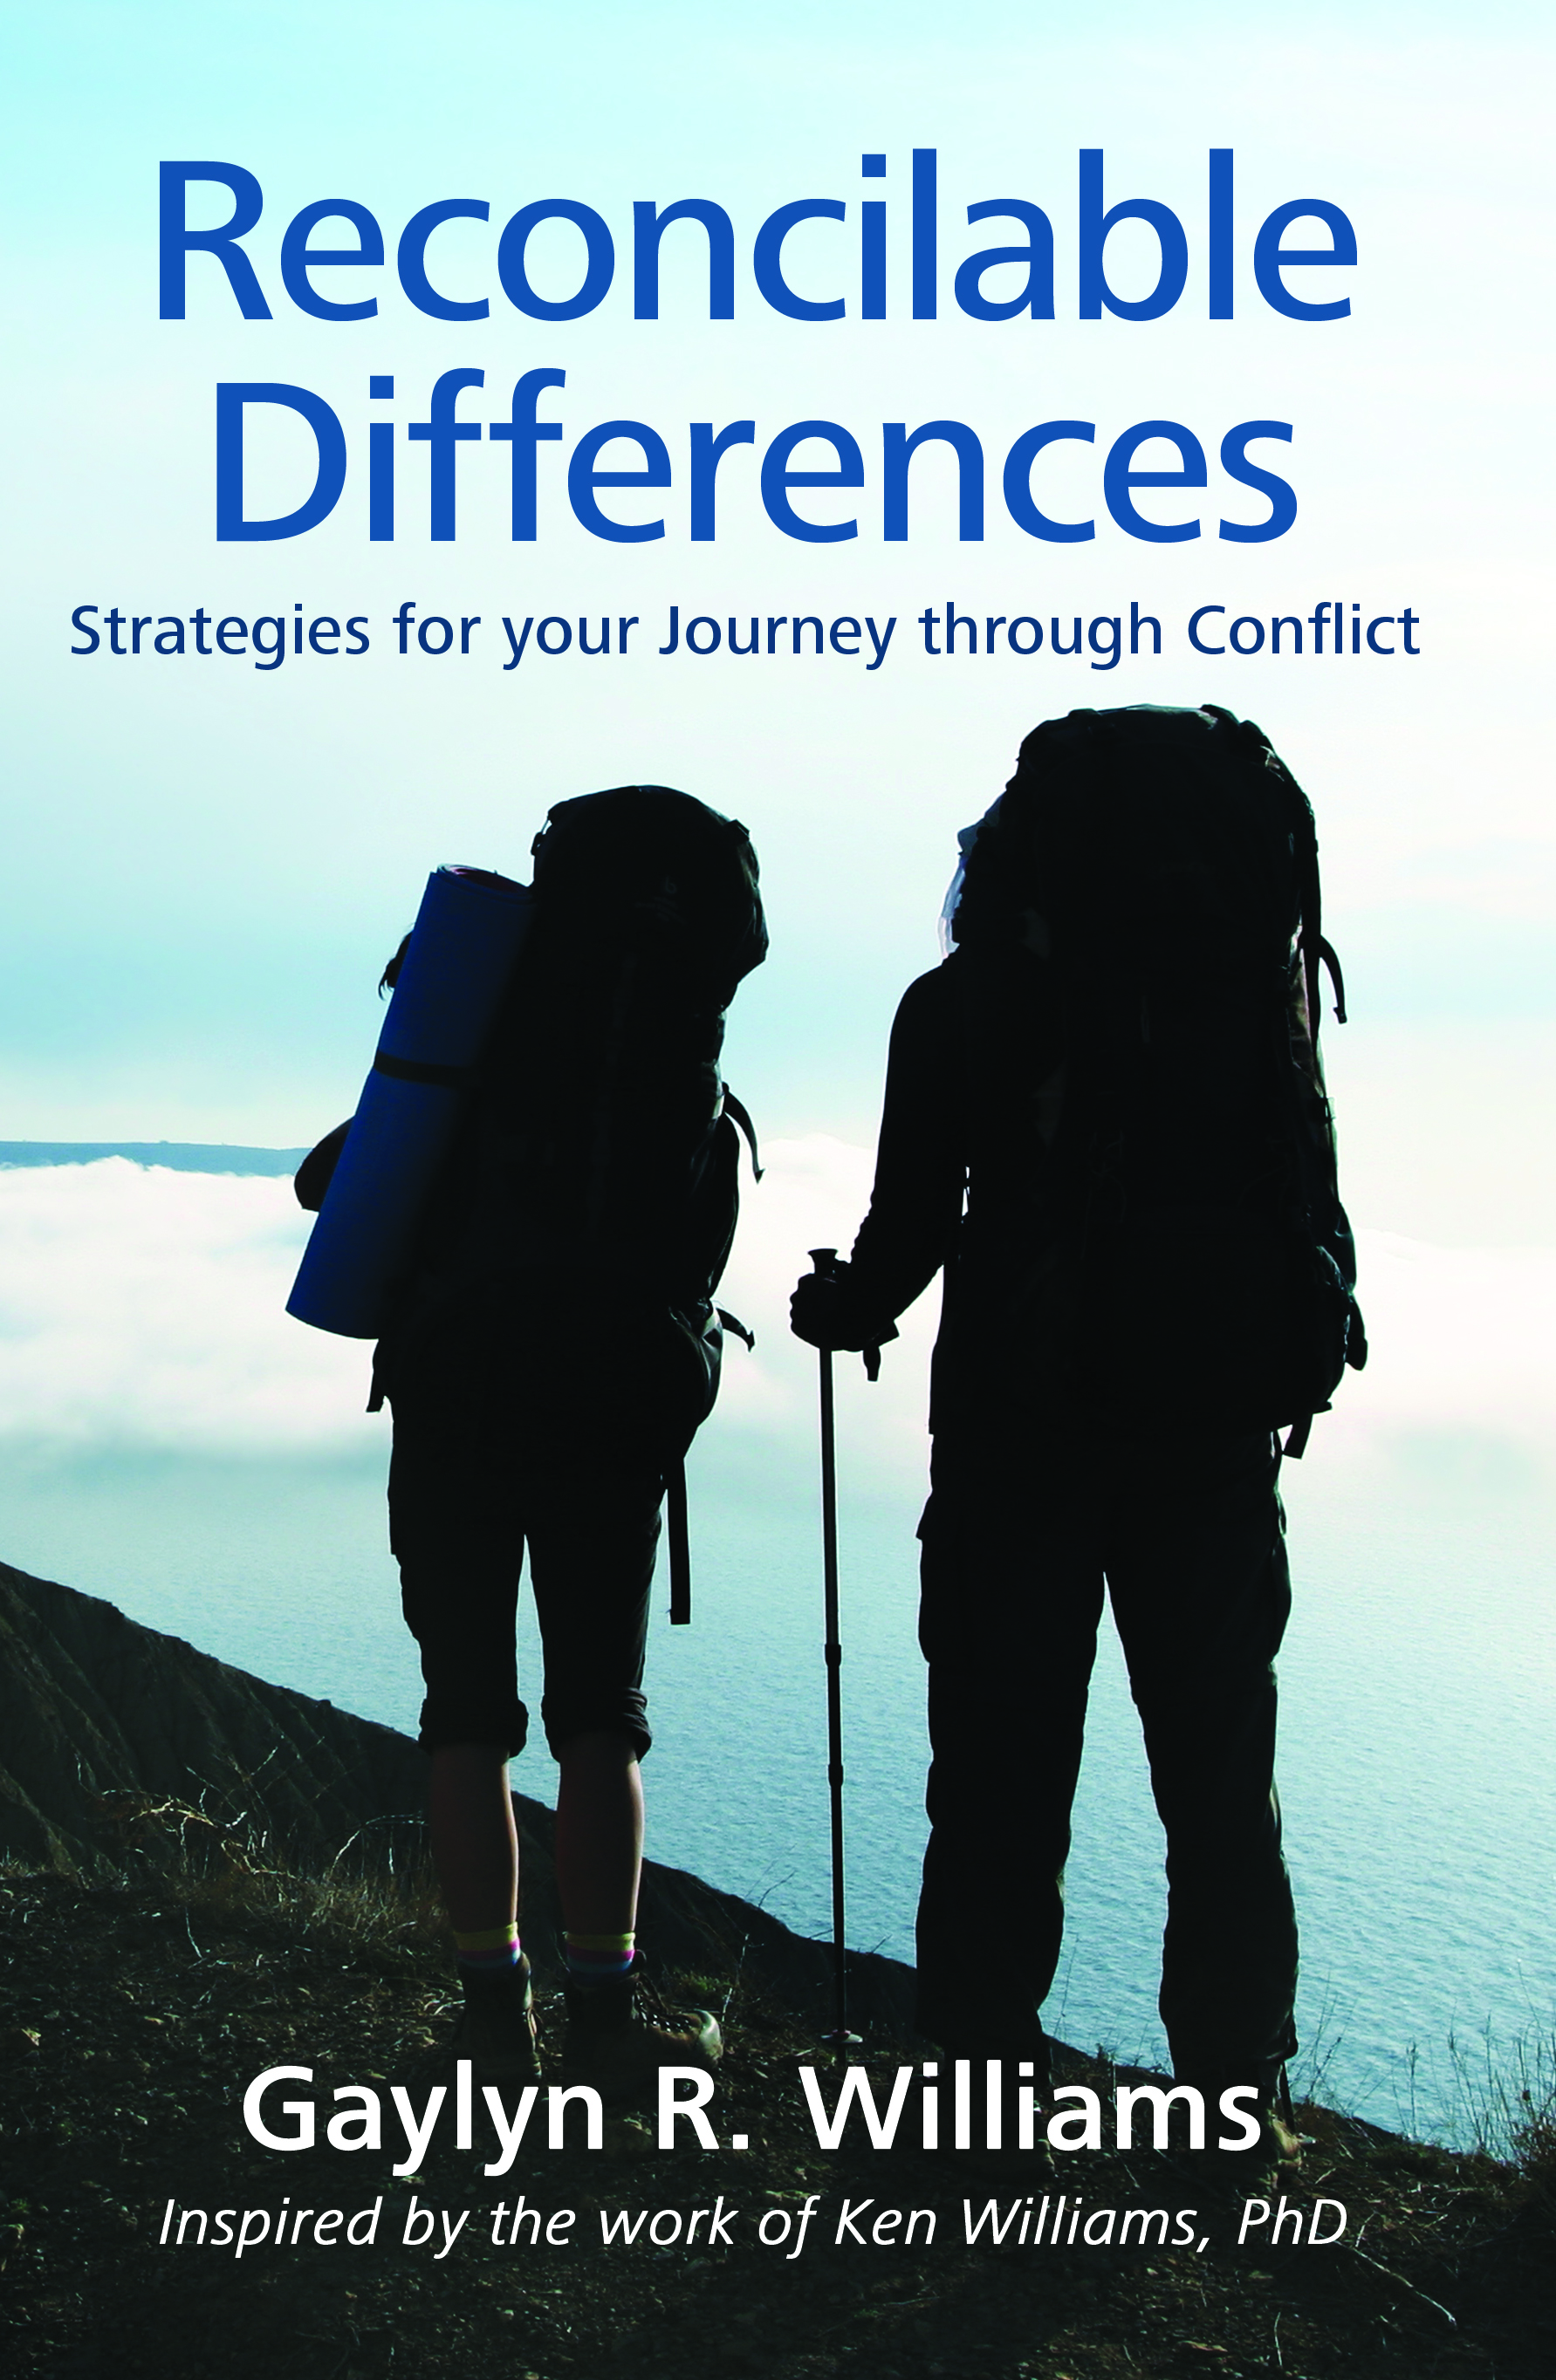 Reconcilable Difference Book Cover